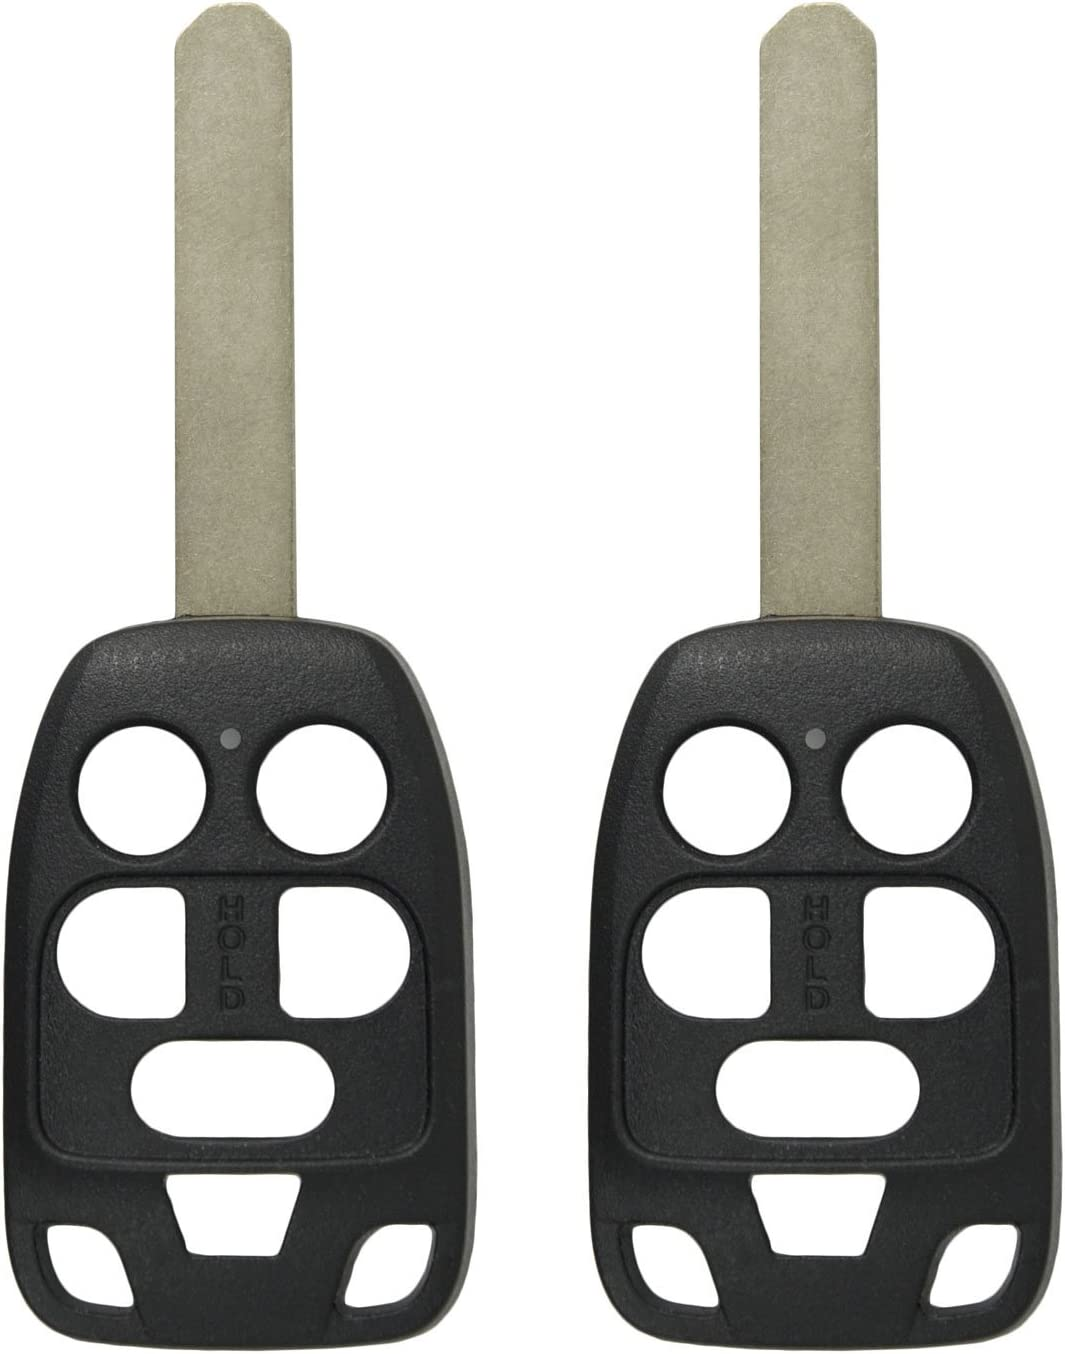 2 Pack Keyless2Go New Uncut Replacement 6 Button Remote Head Key Shell for N5F-A04TAA Shell ONLY